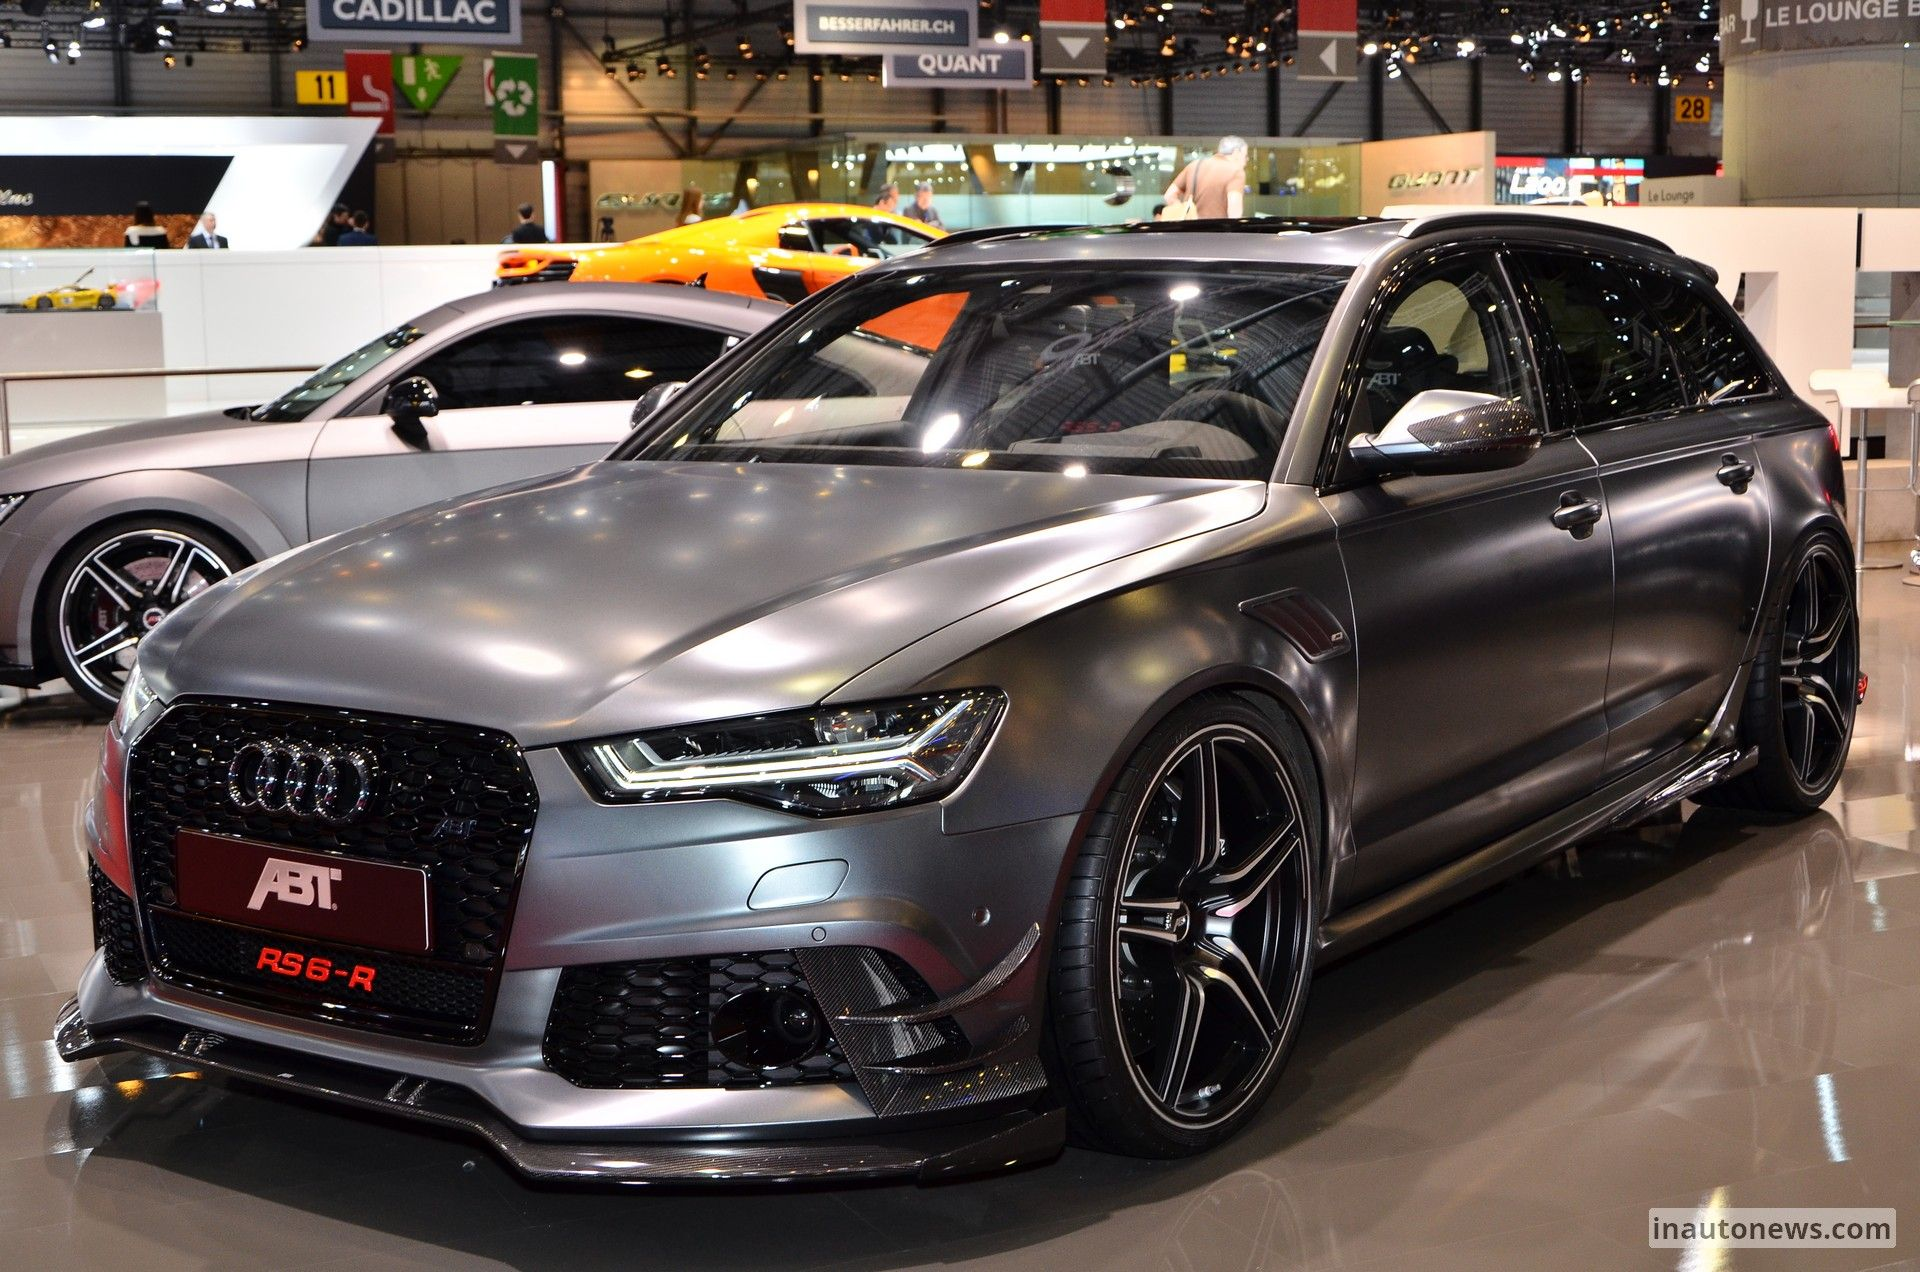 Pin by jean guillaume 2017 on audi rs6 abt tuning s8 rs8 pinterest audi rs6 and audi